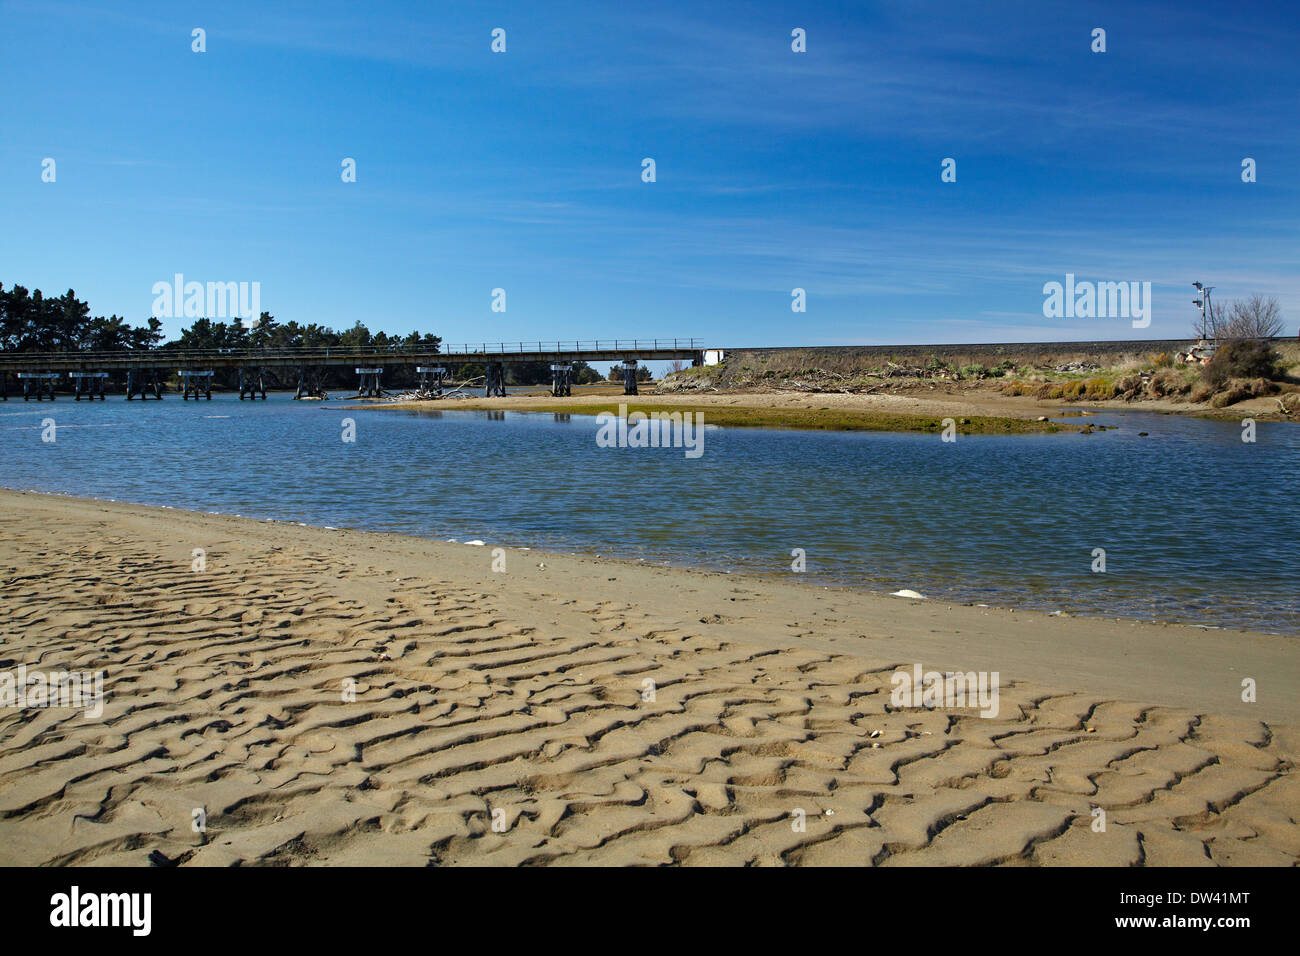 Waikouaiti River, Karitane, and main trunk rail line, Dunedin, Otago, South Island, New Zealand - Stock Image